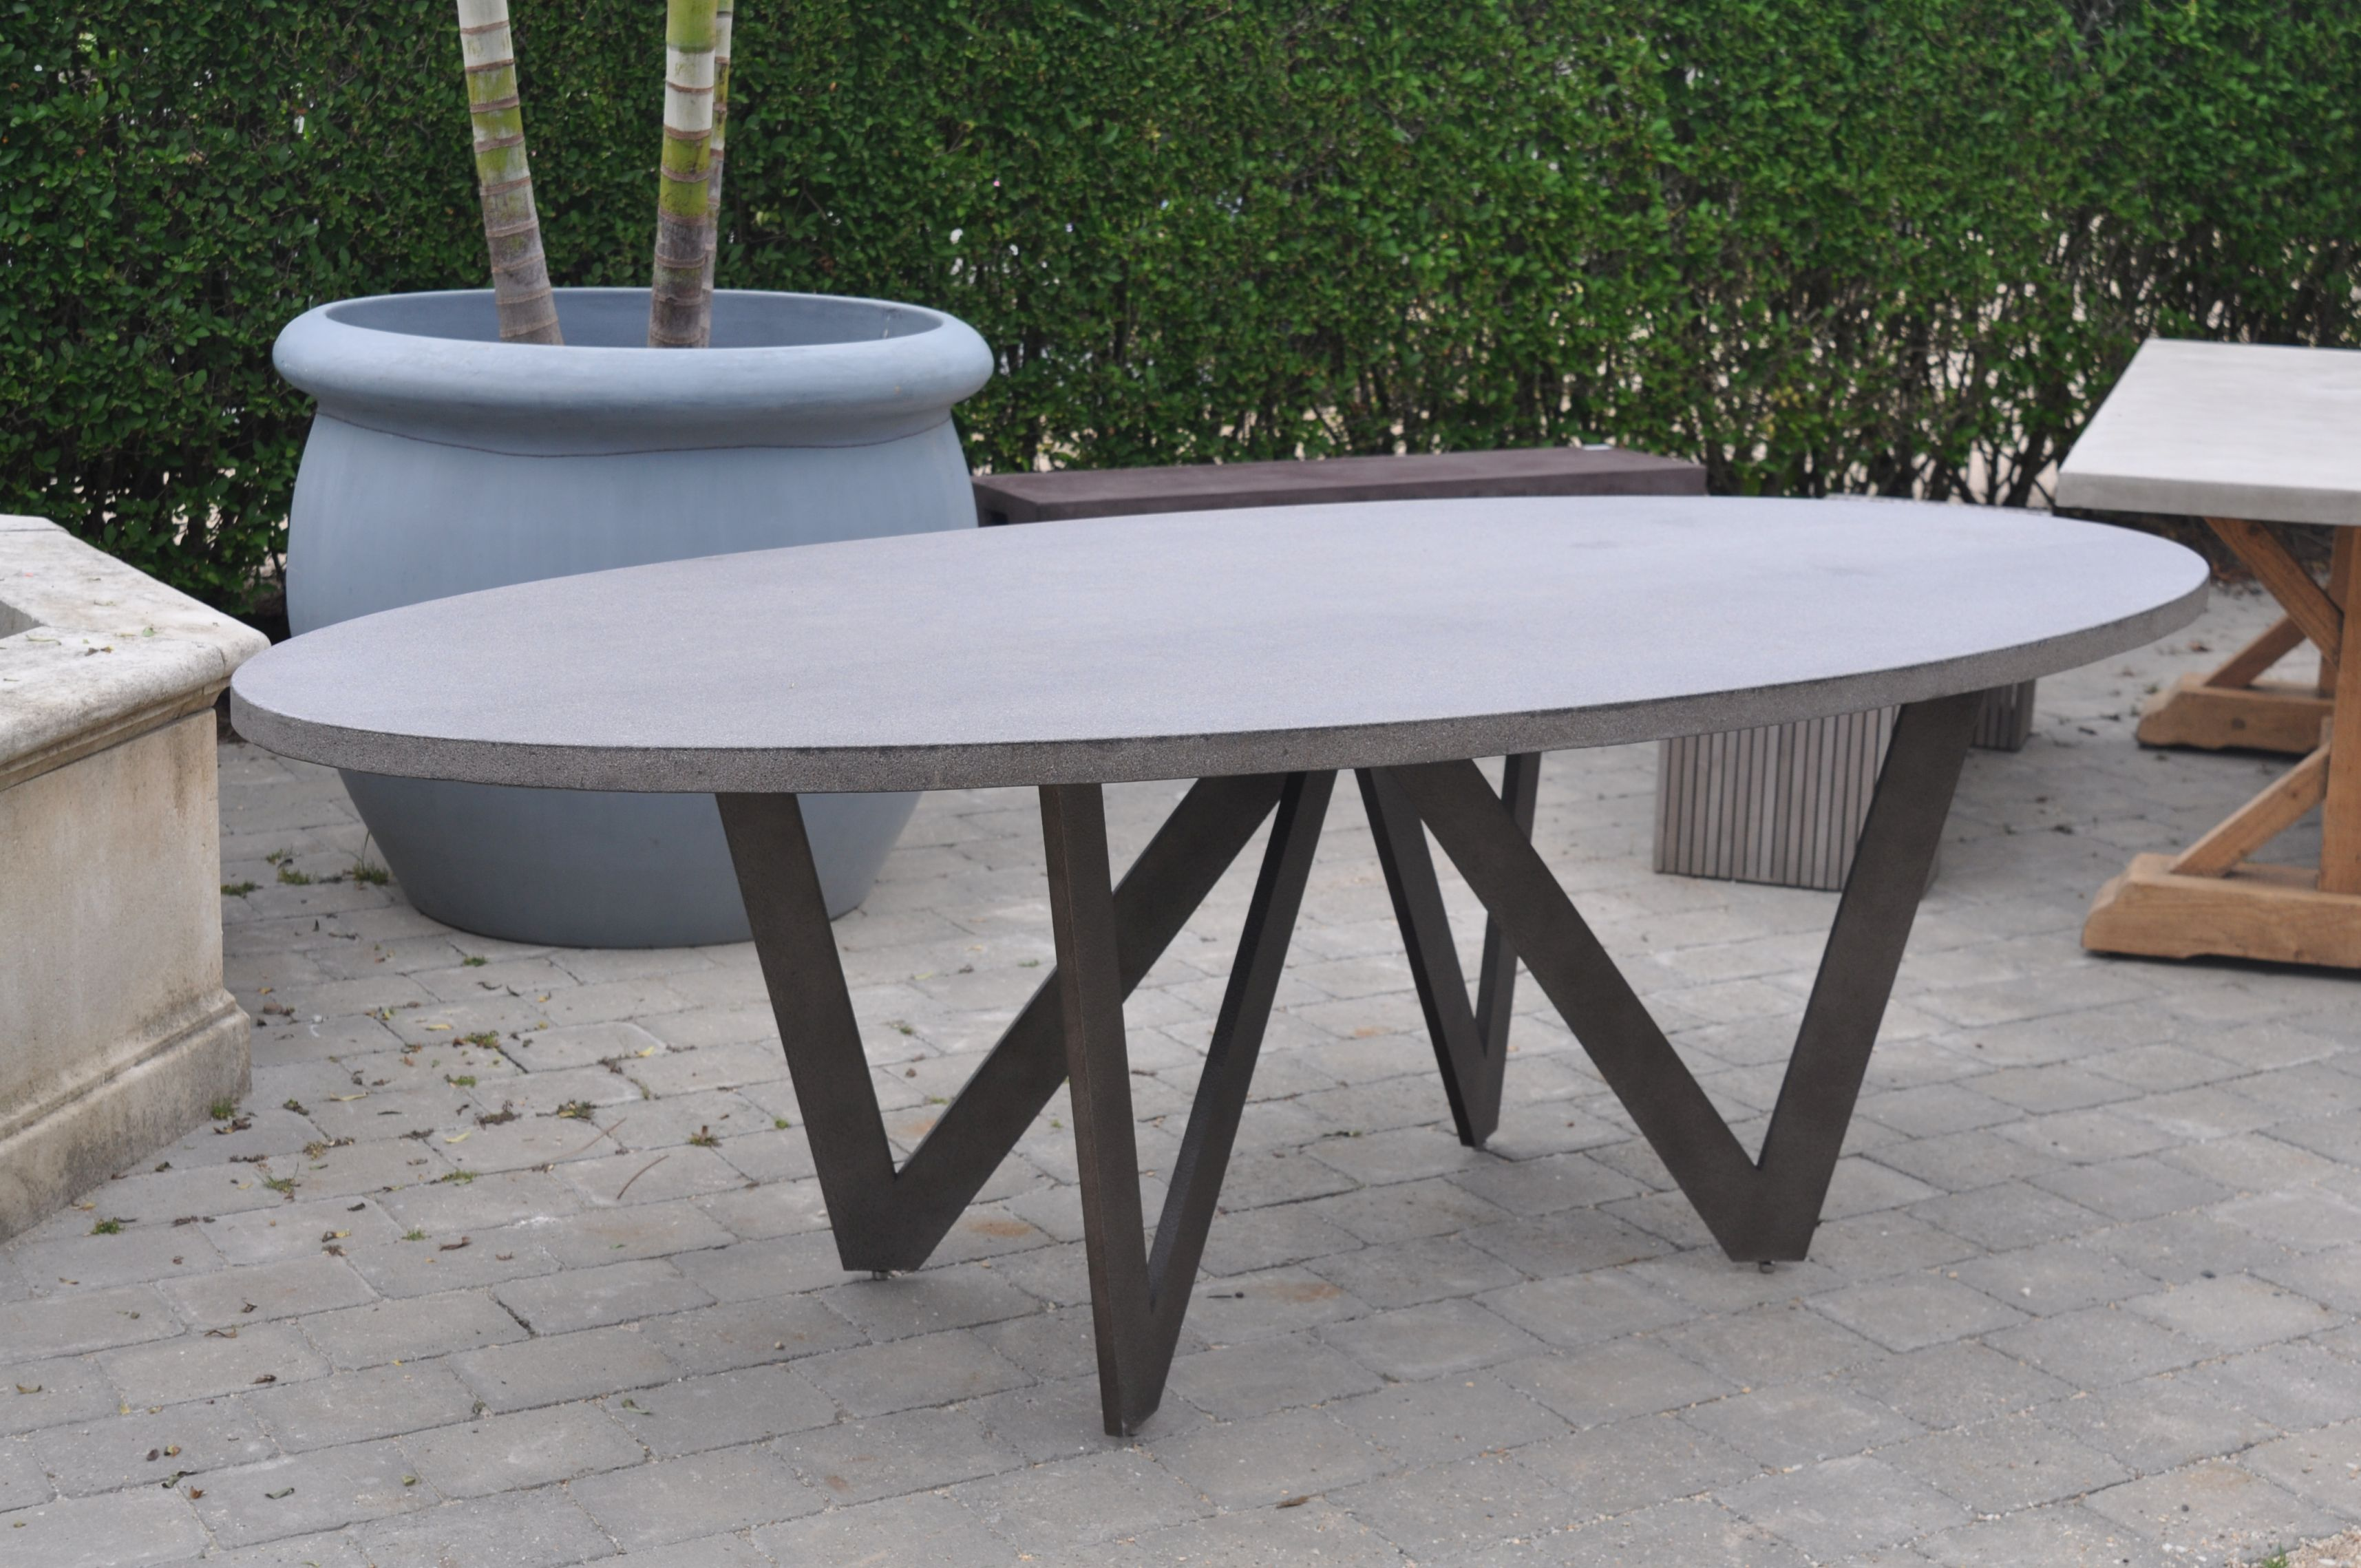 vincentoval mikaza dining oval product modern modernes montreal vincent table meubles